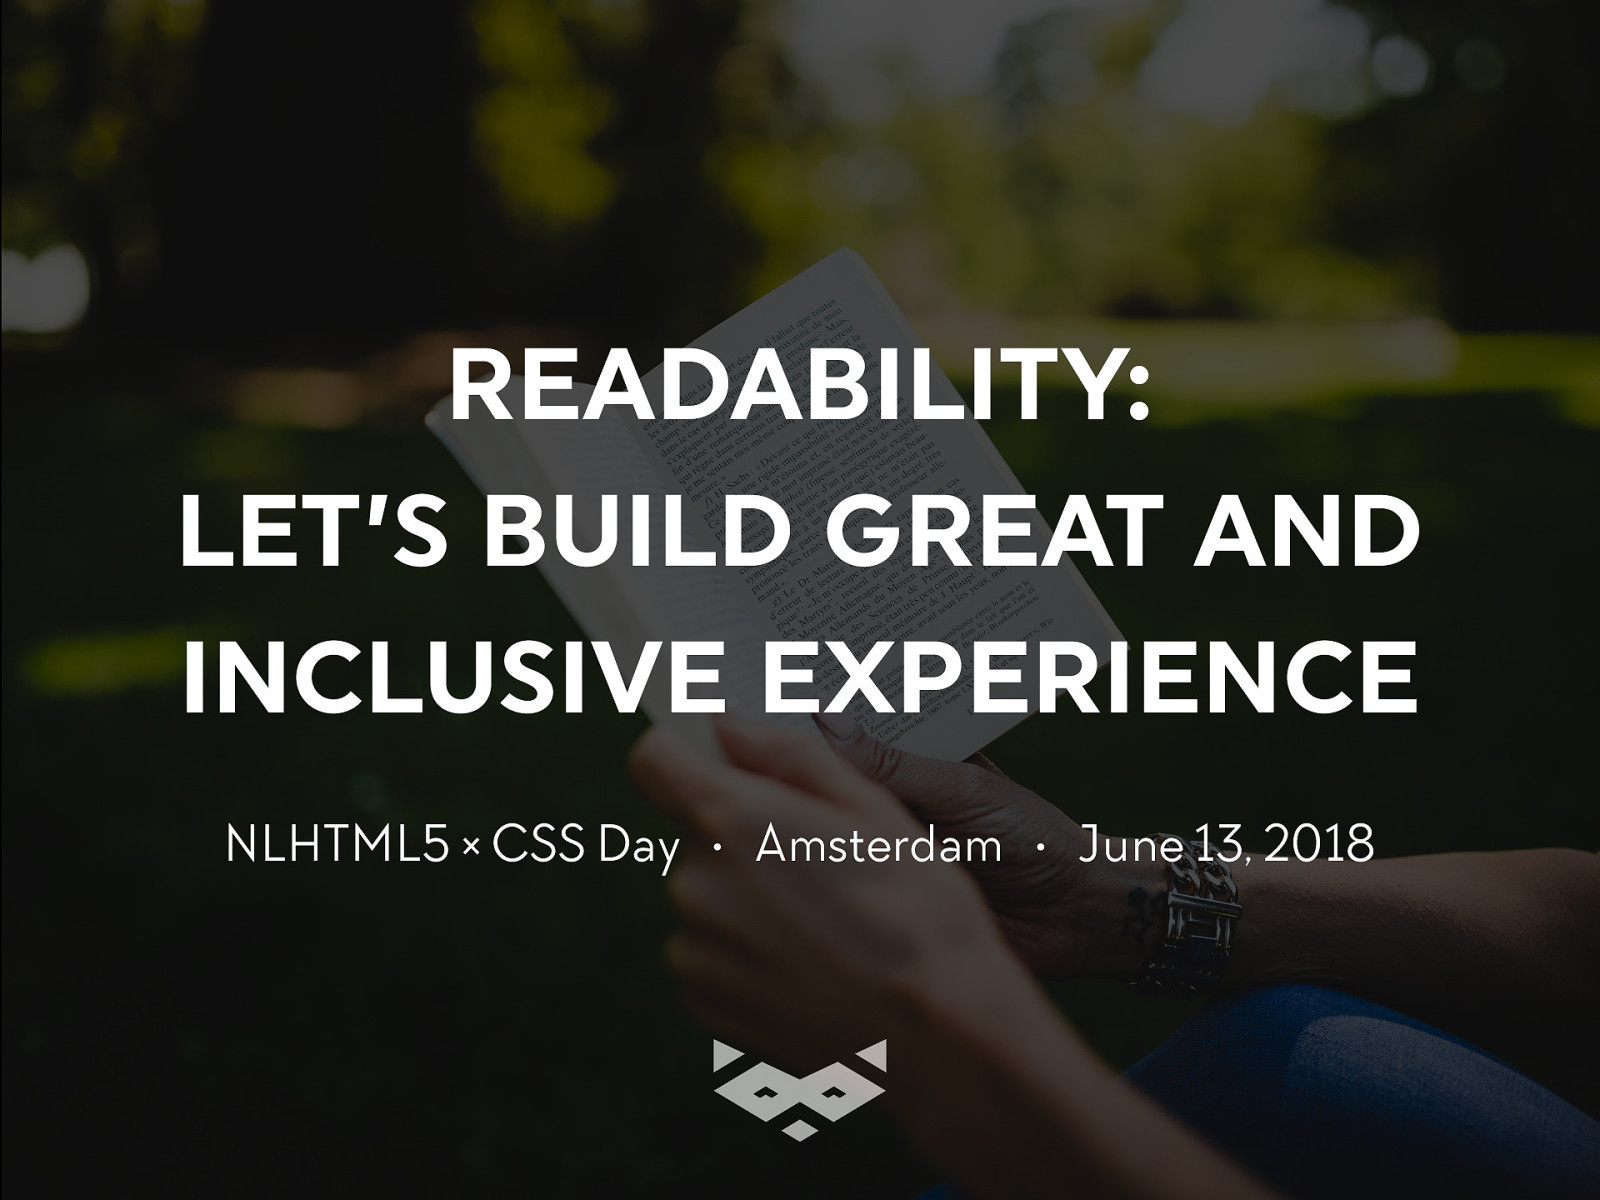 Reading & learning disabilities: Let's build a great and inclusive digital experience together